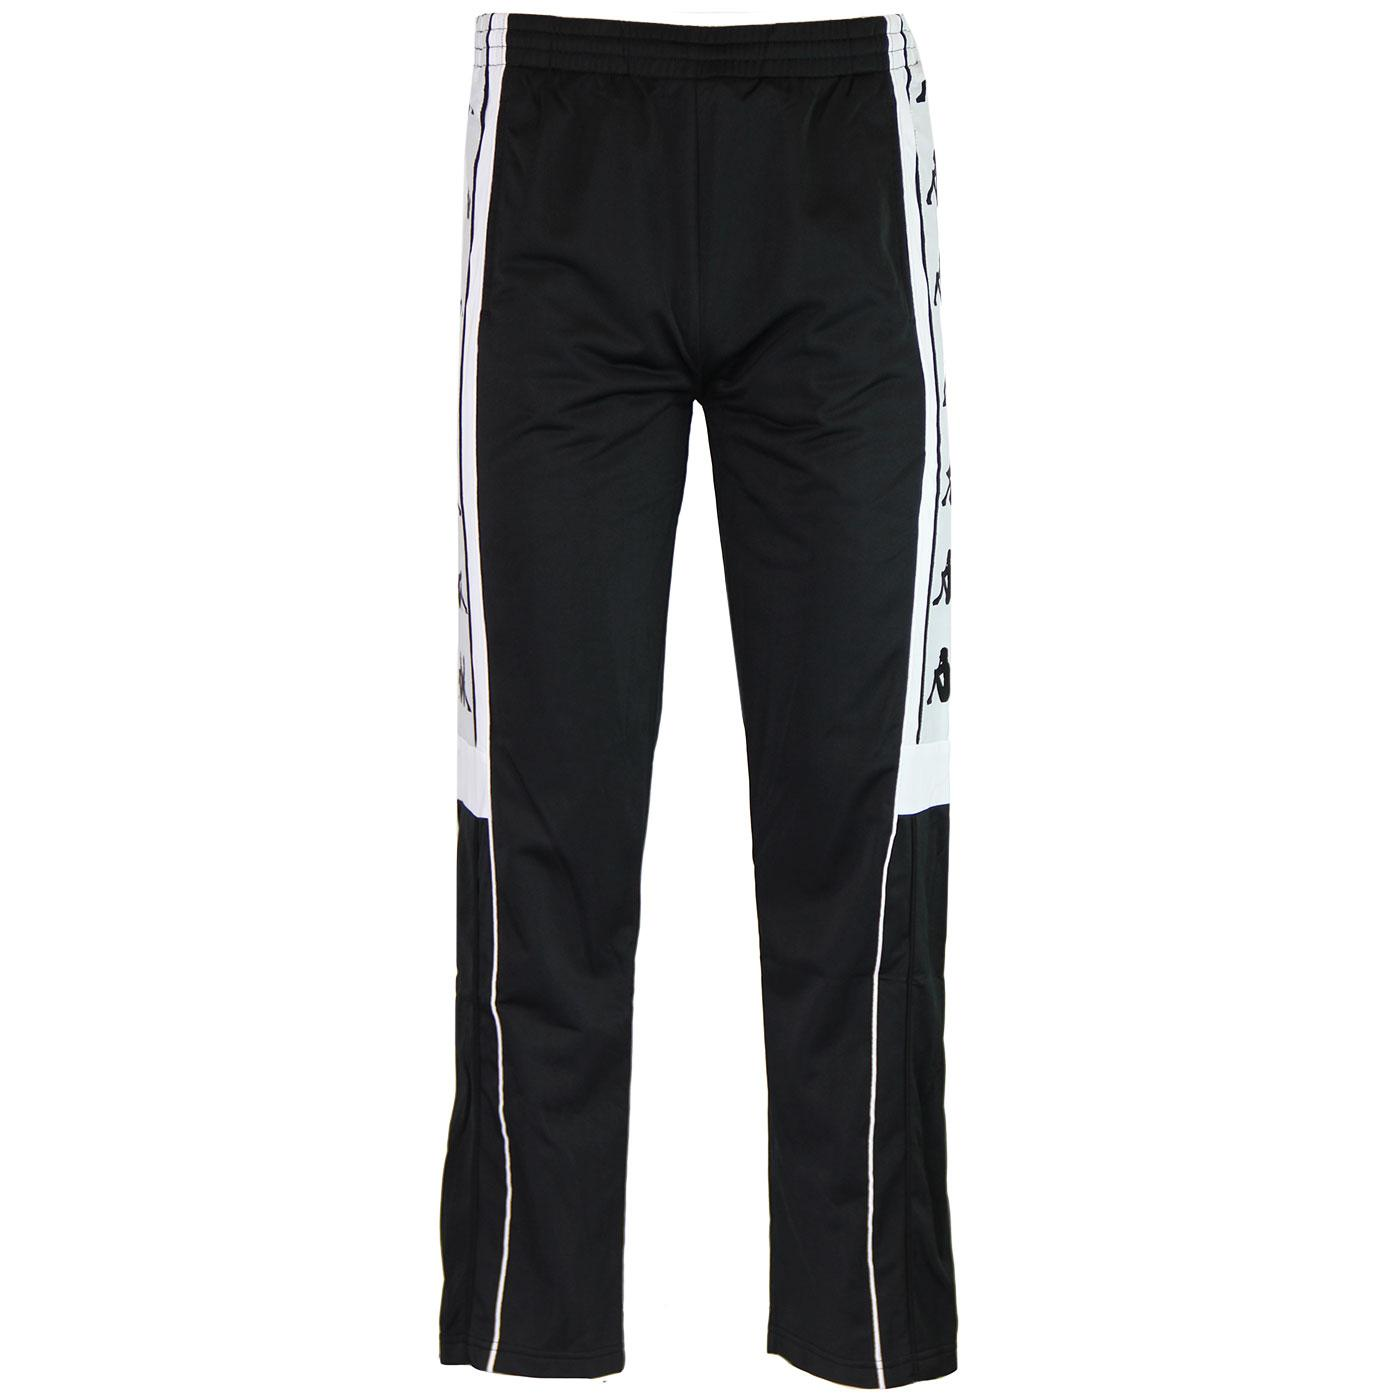 Banda Arpan KAPPA Retro Popper Pants Black/White